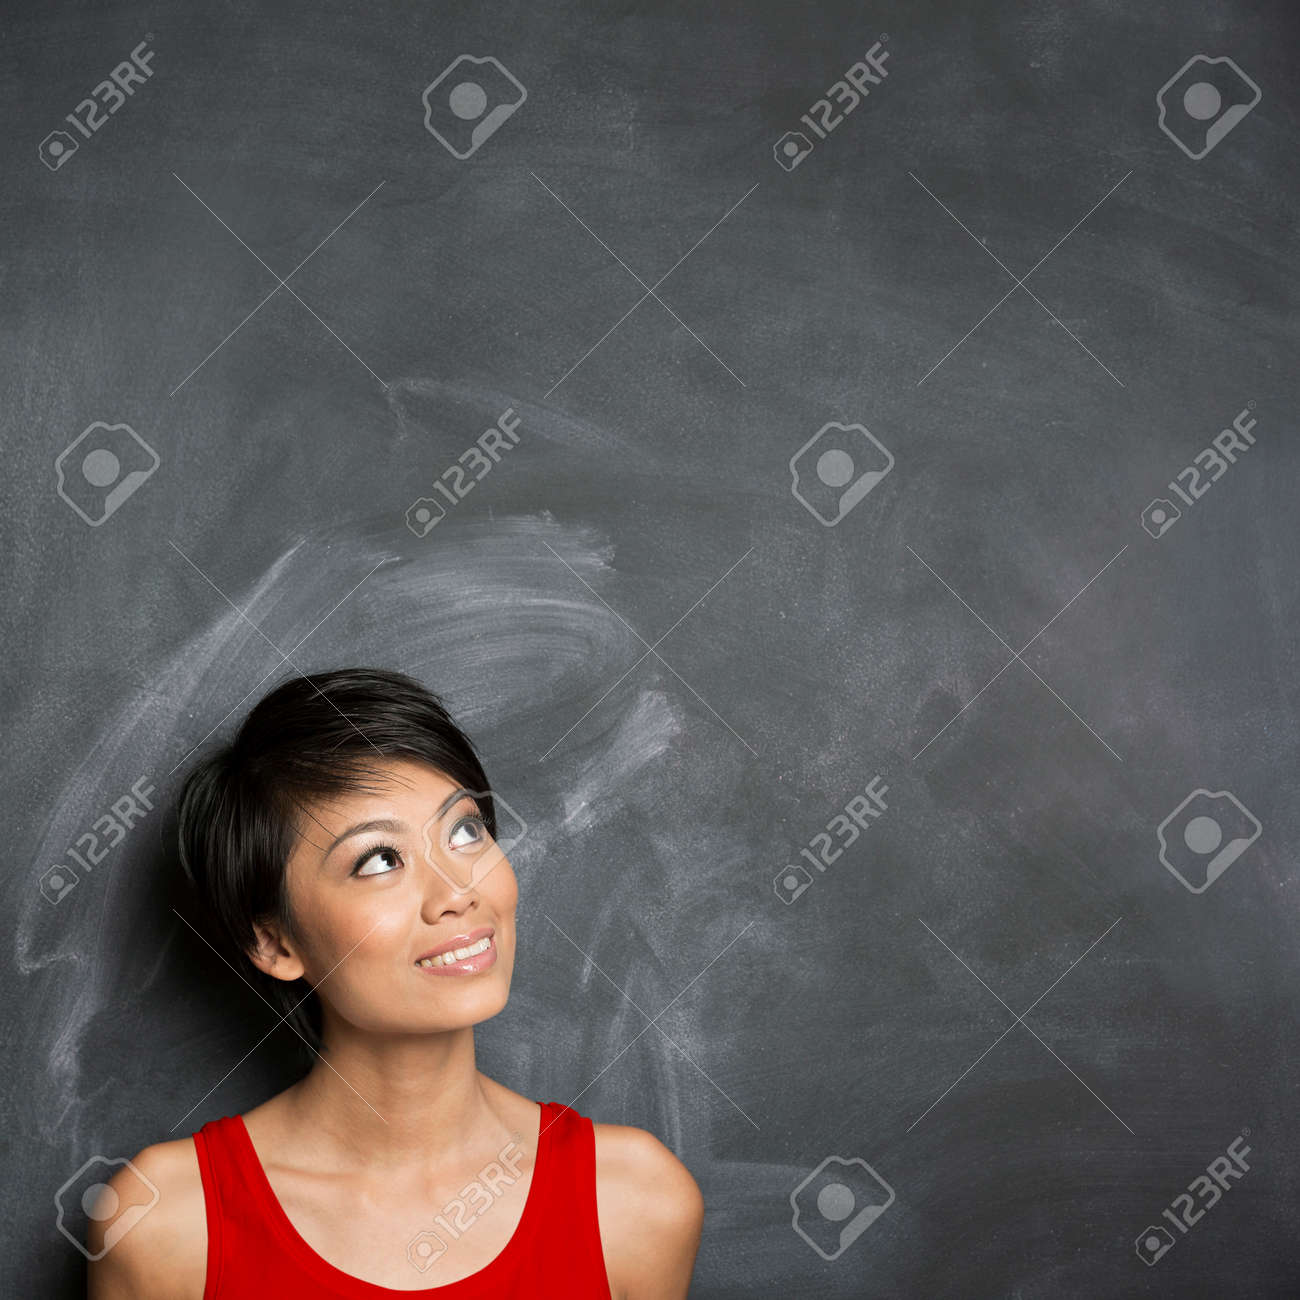 Happy Chinese woman standing in front of a dark chalkboard. The chalk board is blank waiting for a message. Stock Photo - 29578908